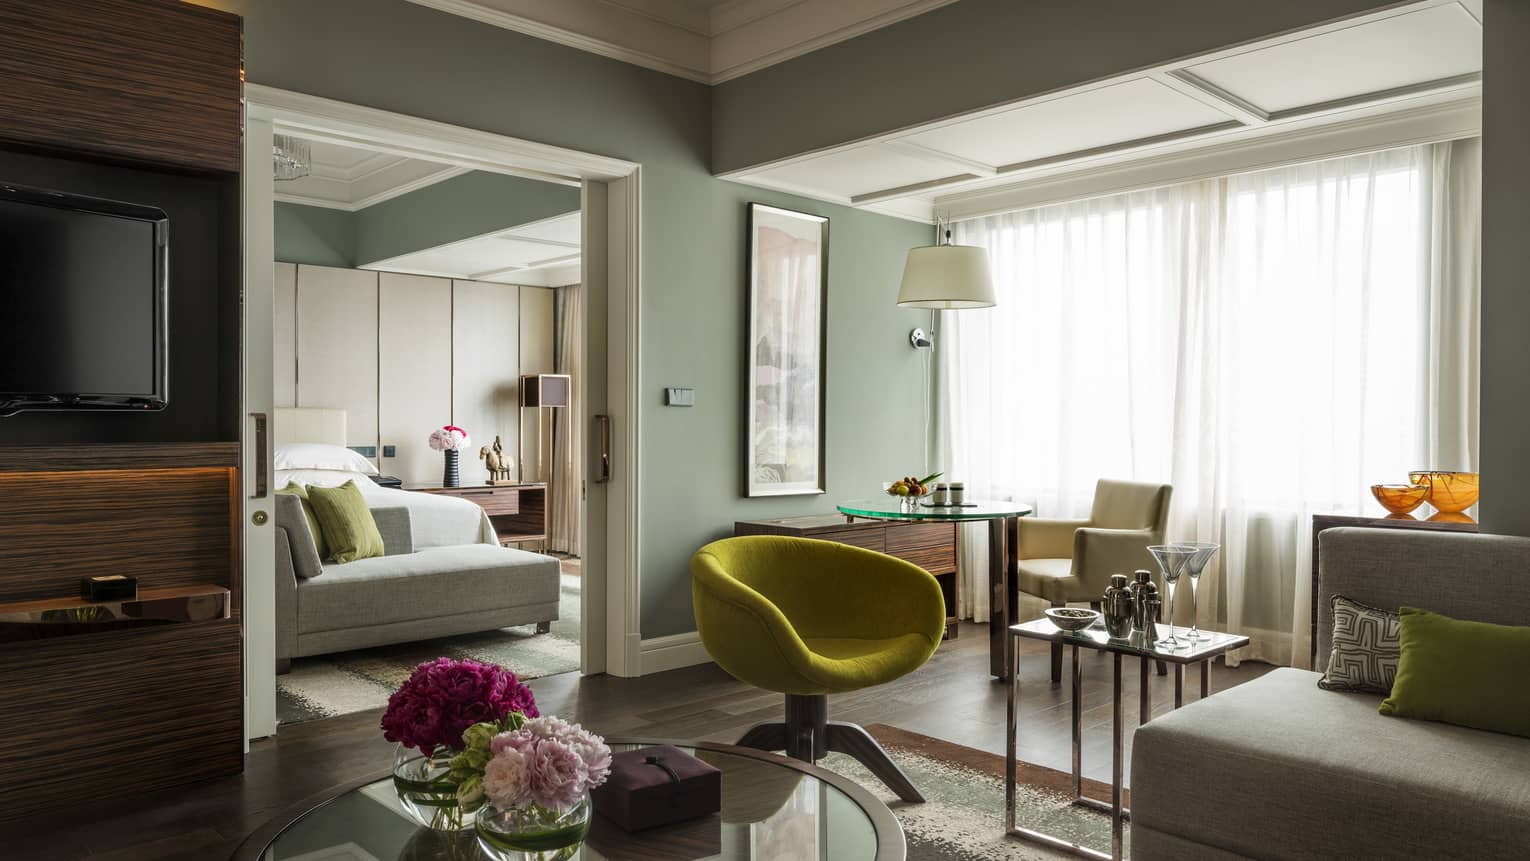 Executive Suite living area with modern green chair, table with flowers, green wall, bedroom door